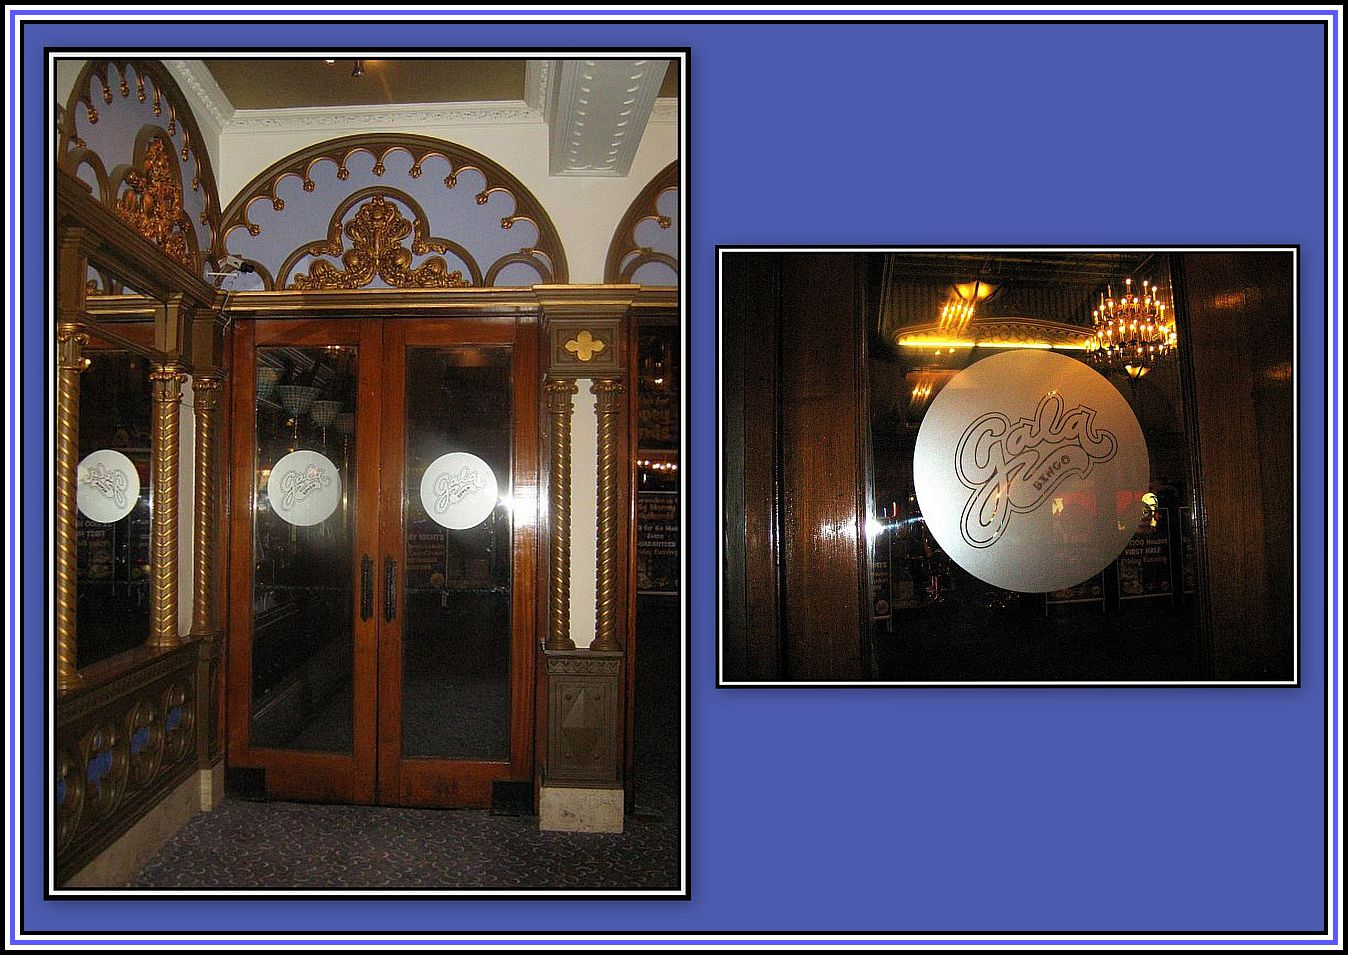 Doors to Grand Foyer Collage